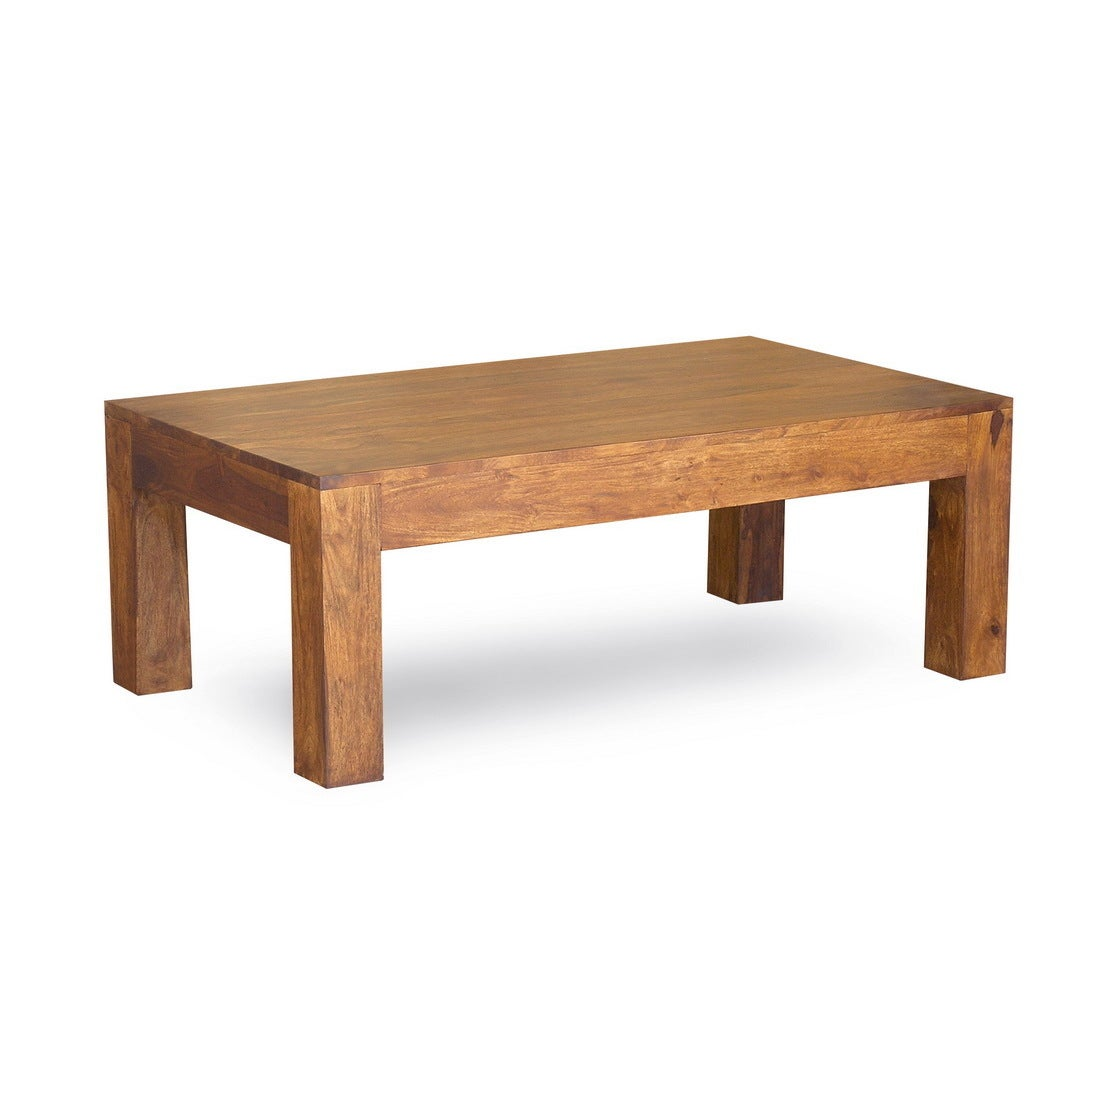 Timbergirl Handmade Cube Coffee Table (India) (Cube squar...